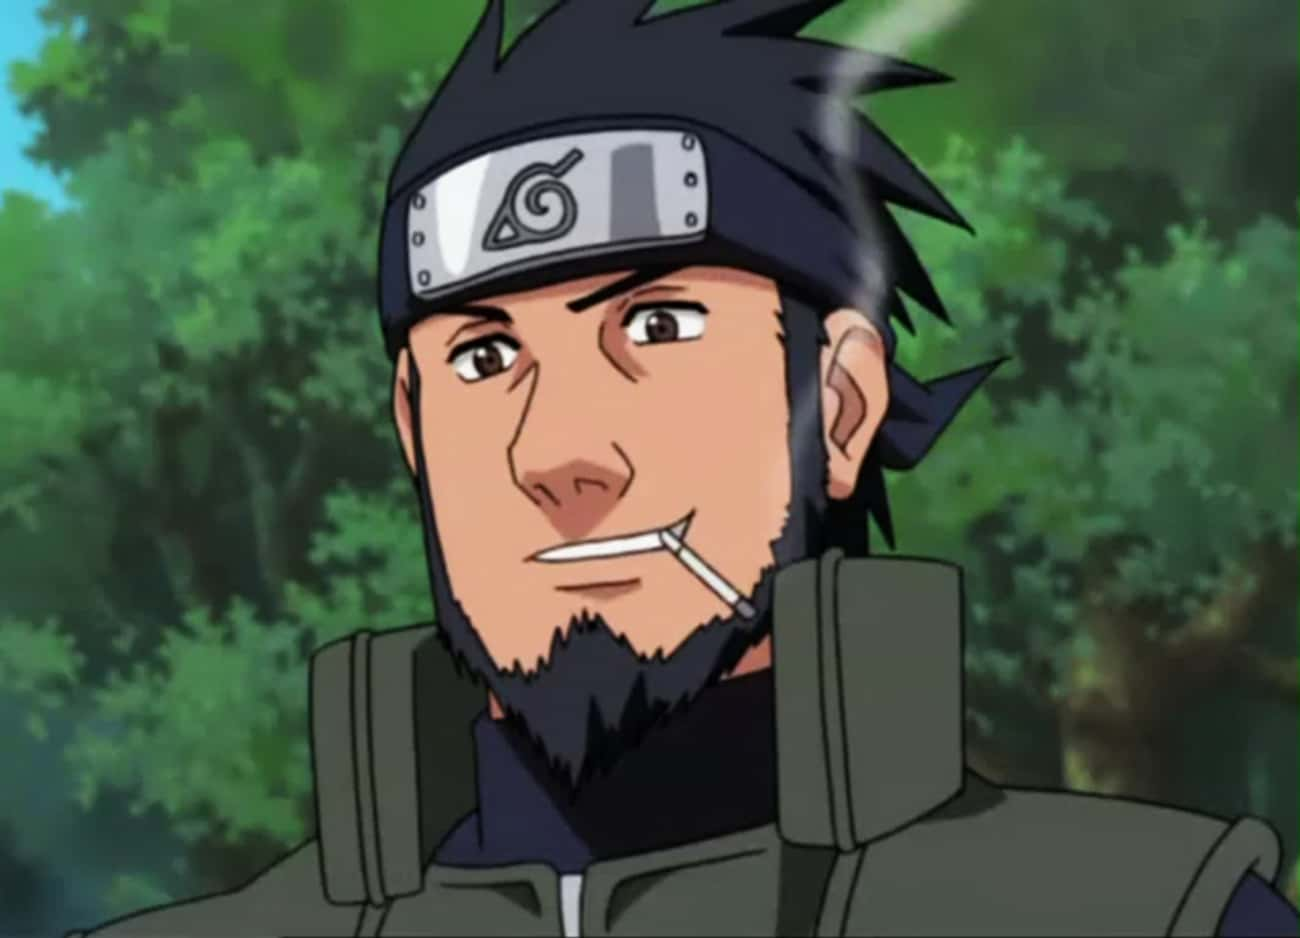 Asuma Sarutobi is listed (or ranked) 1 on the list The Best Anime Characters With Beards